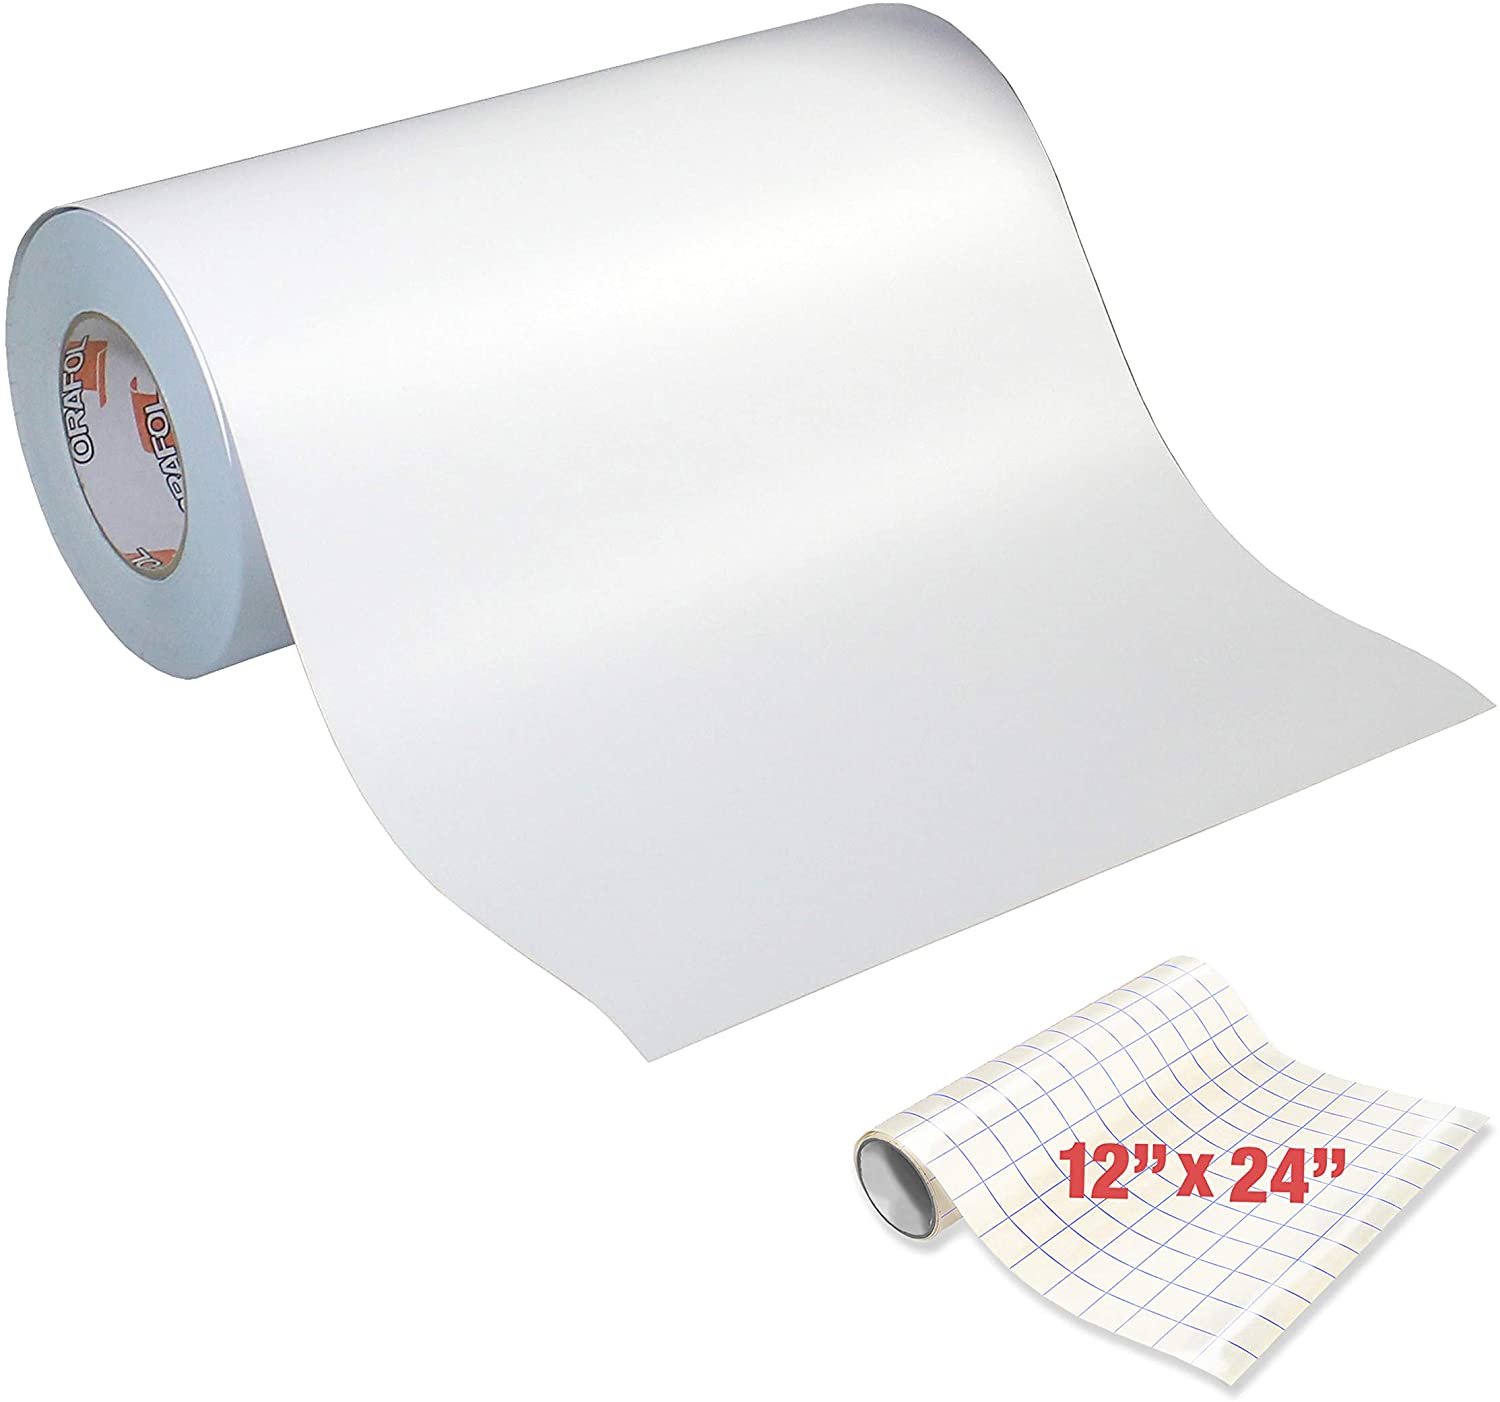 Oracal 631 Roll of Matte White Vinyl for Cricut & Cameo (12 x 10yrds (30ft))